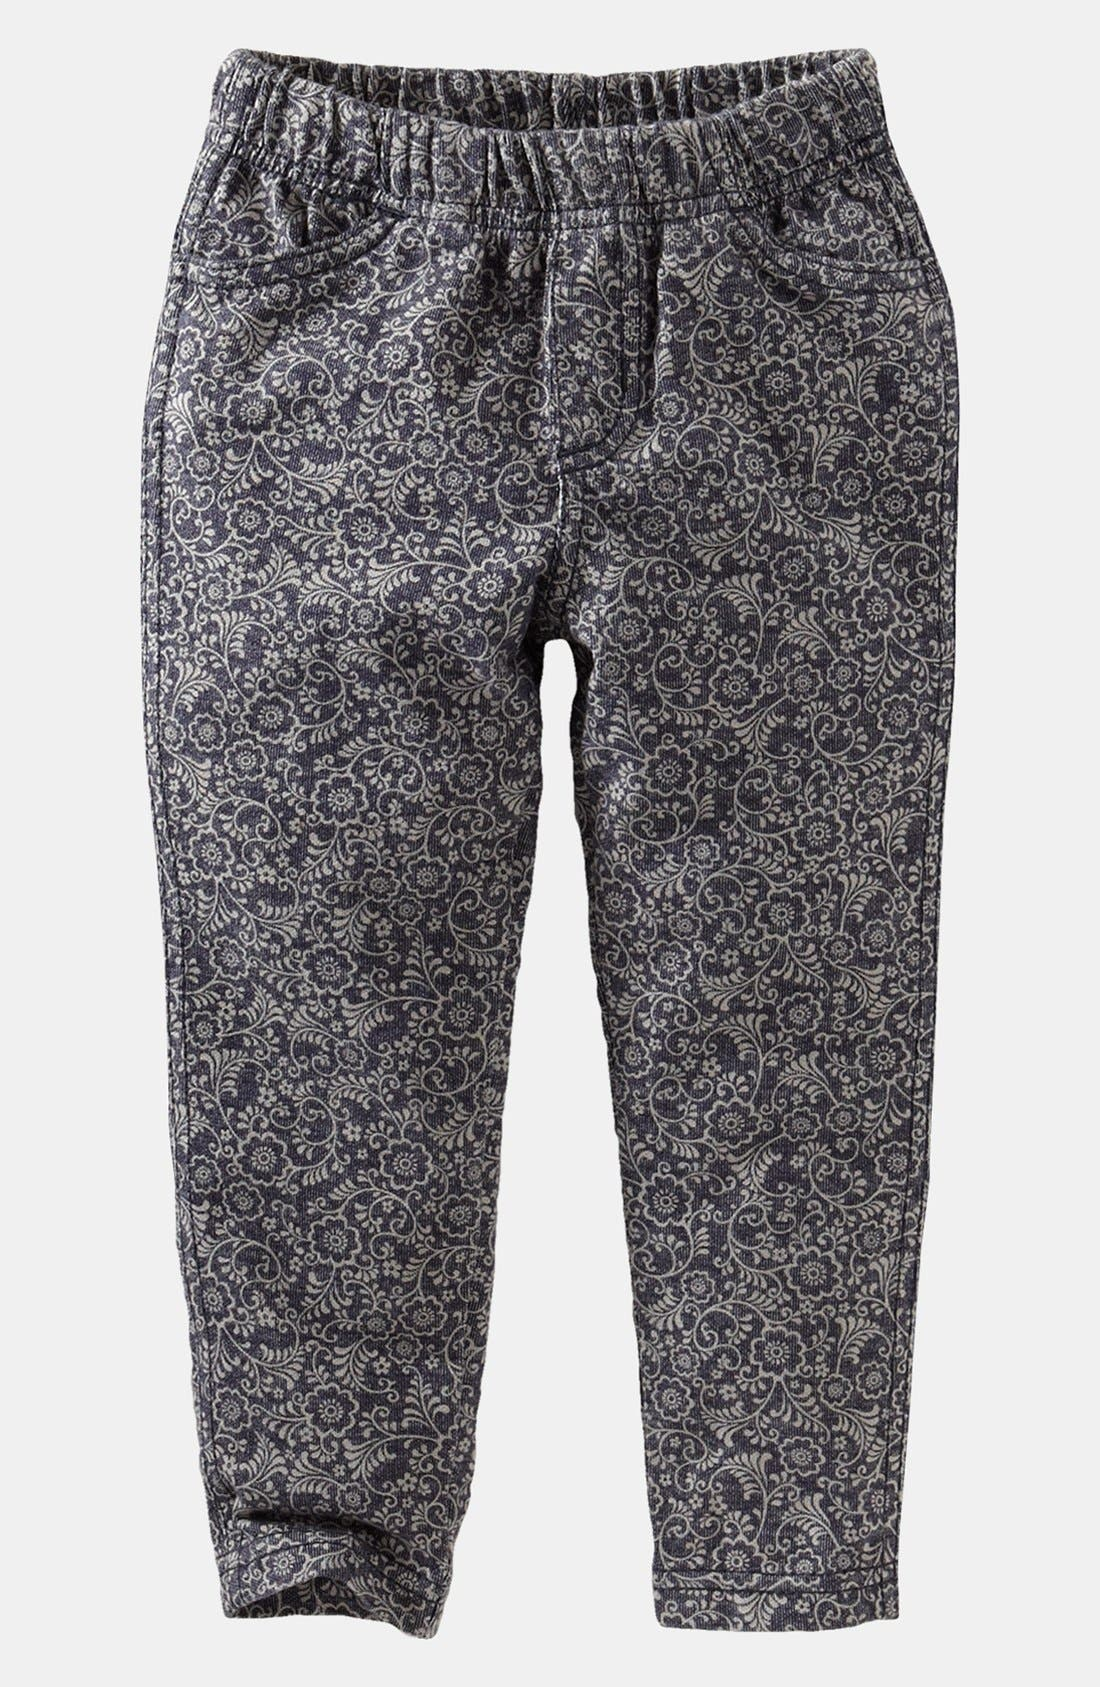 Alternate Image 1 Selected - Tea Collection Print Skinny Pants (Little Girls & Big Girls)